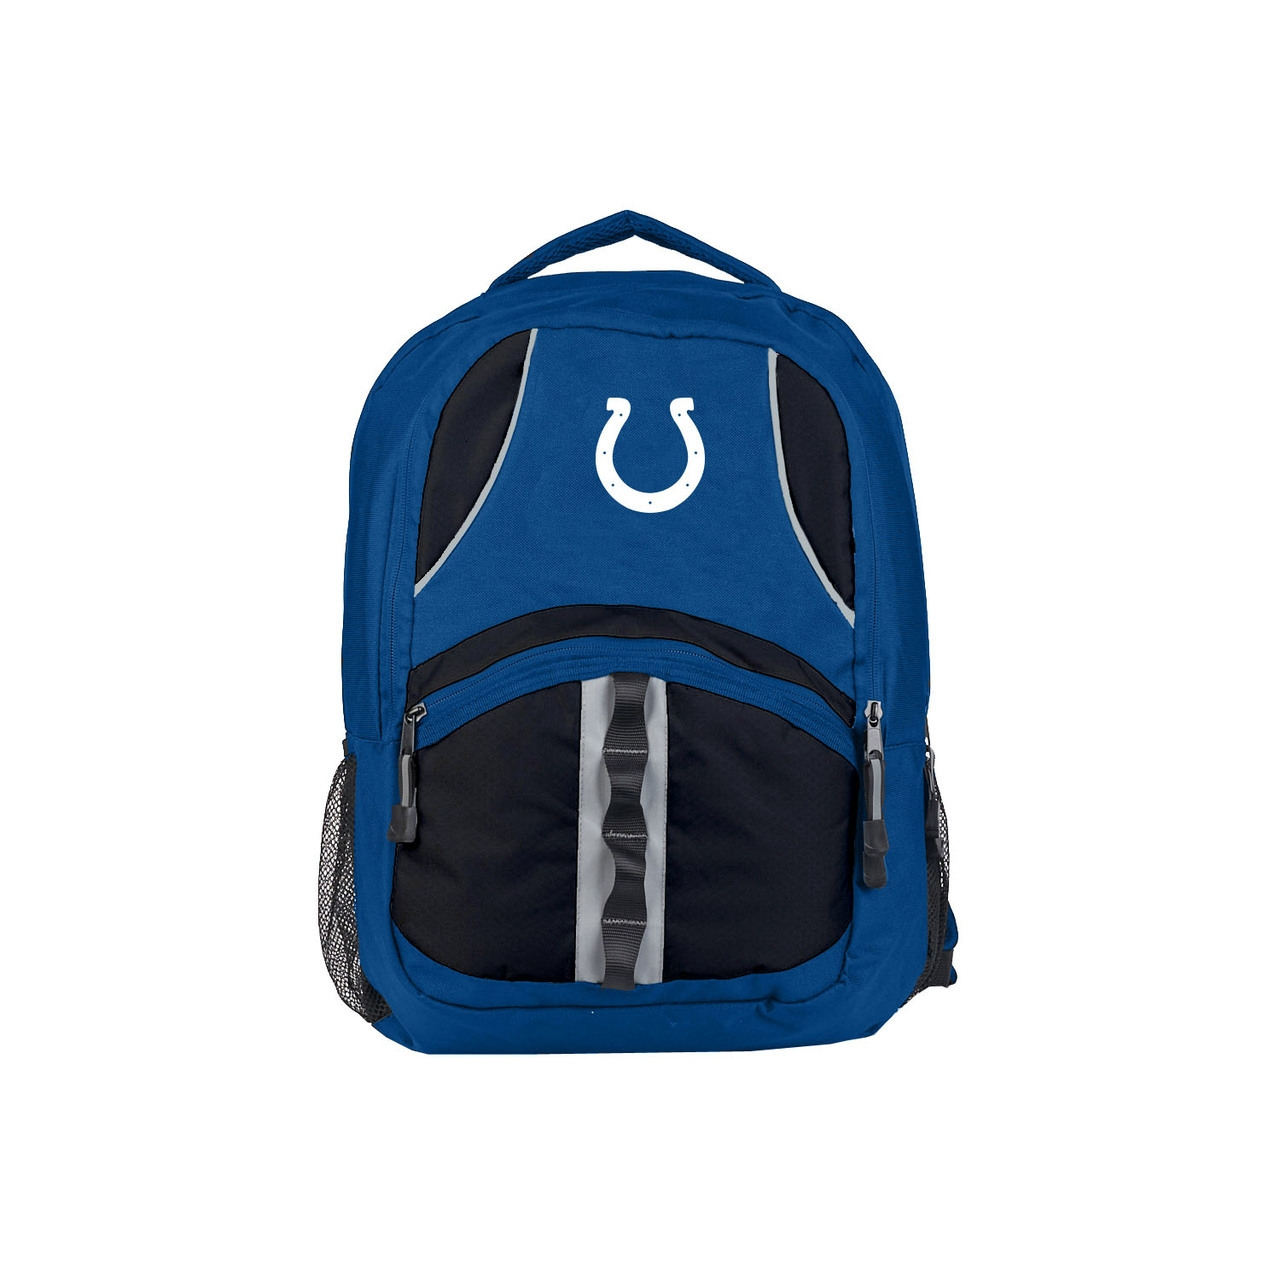 Nfl Football Indianapolis Colts Tumblers And Pint Glasses - 8791890636 - Indianapolis Colts Backpack Captain Style  And Black 8791890636